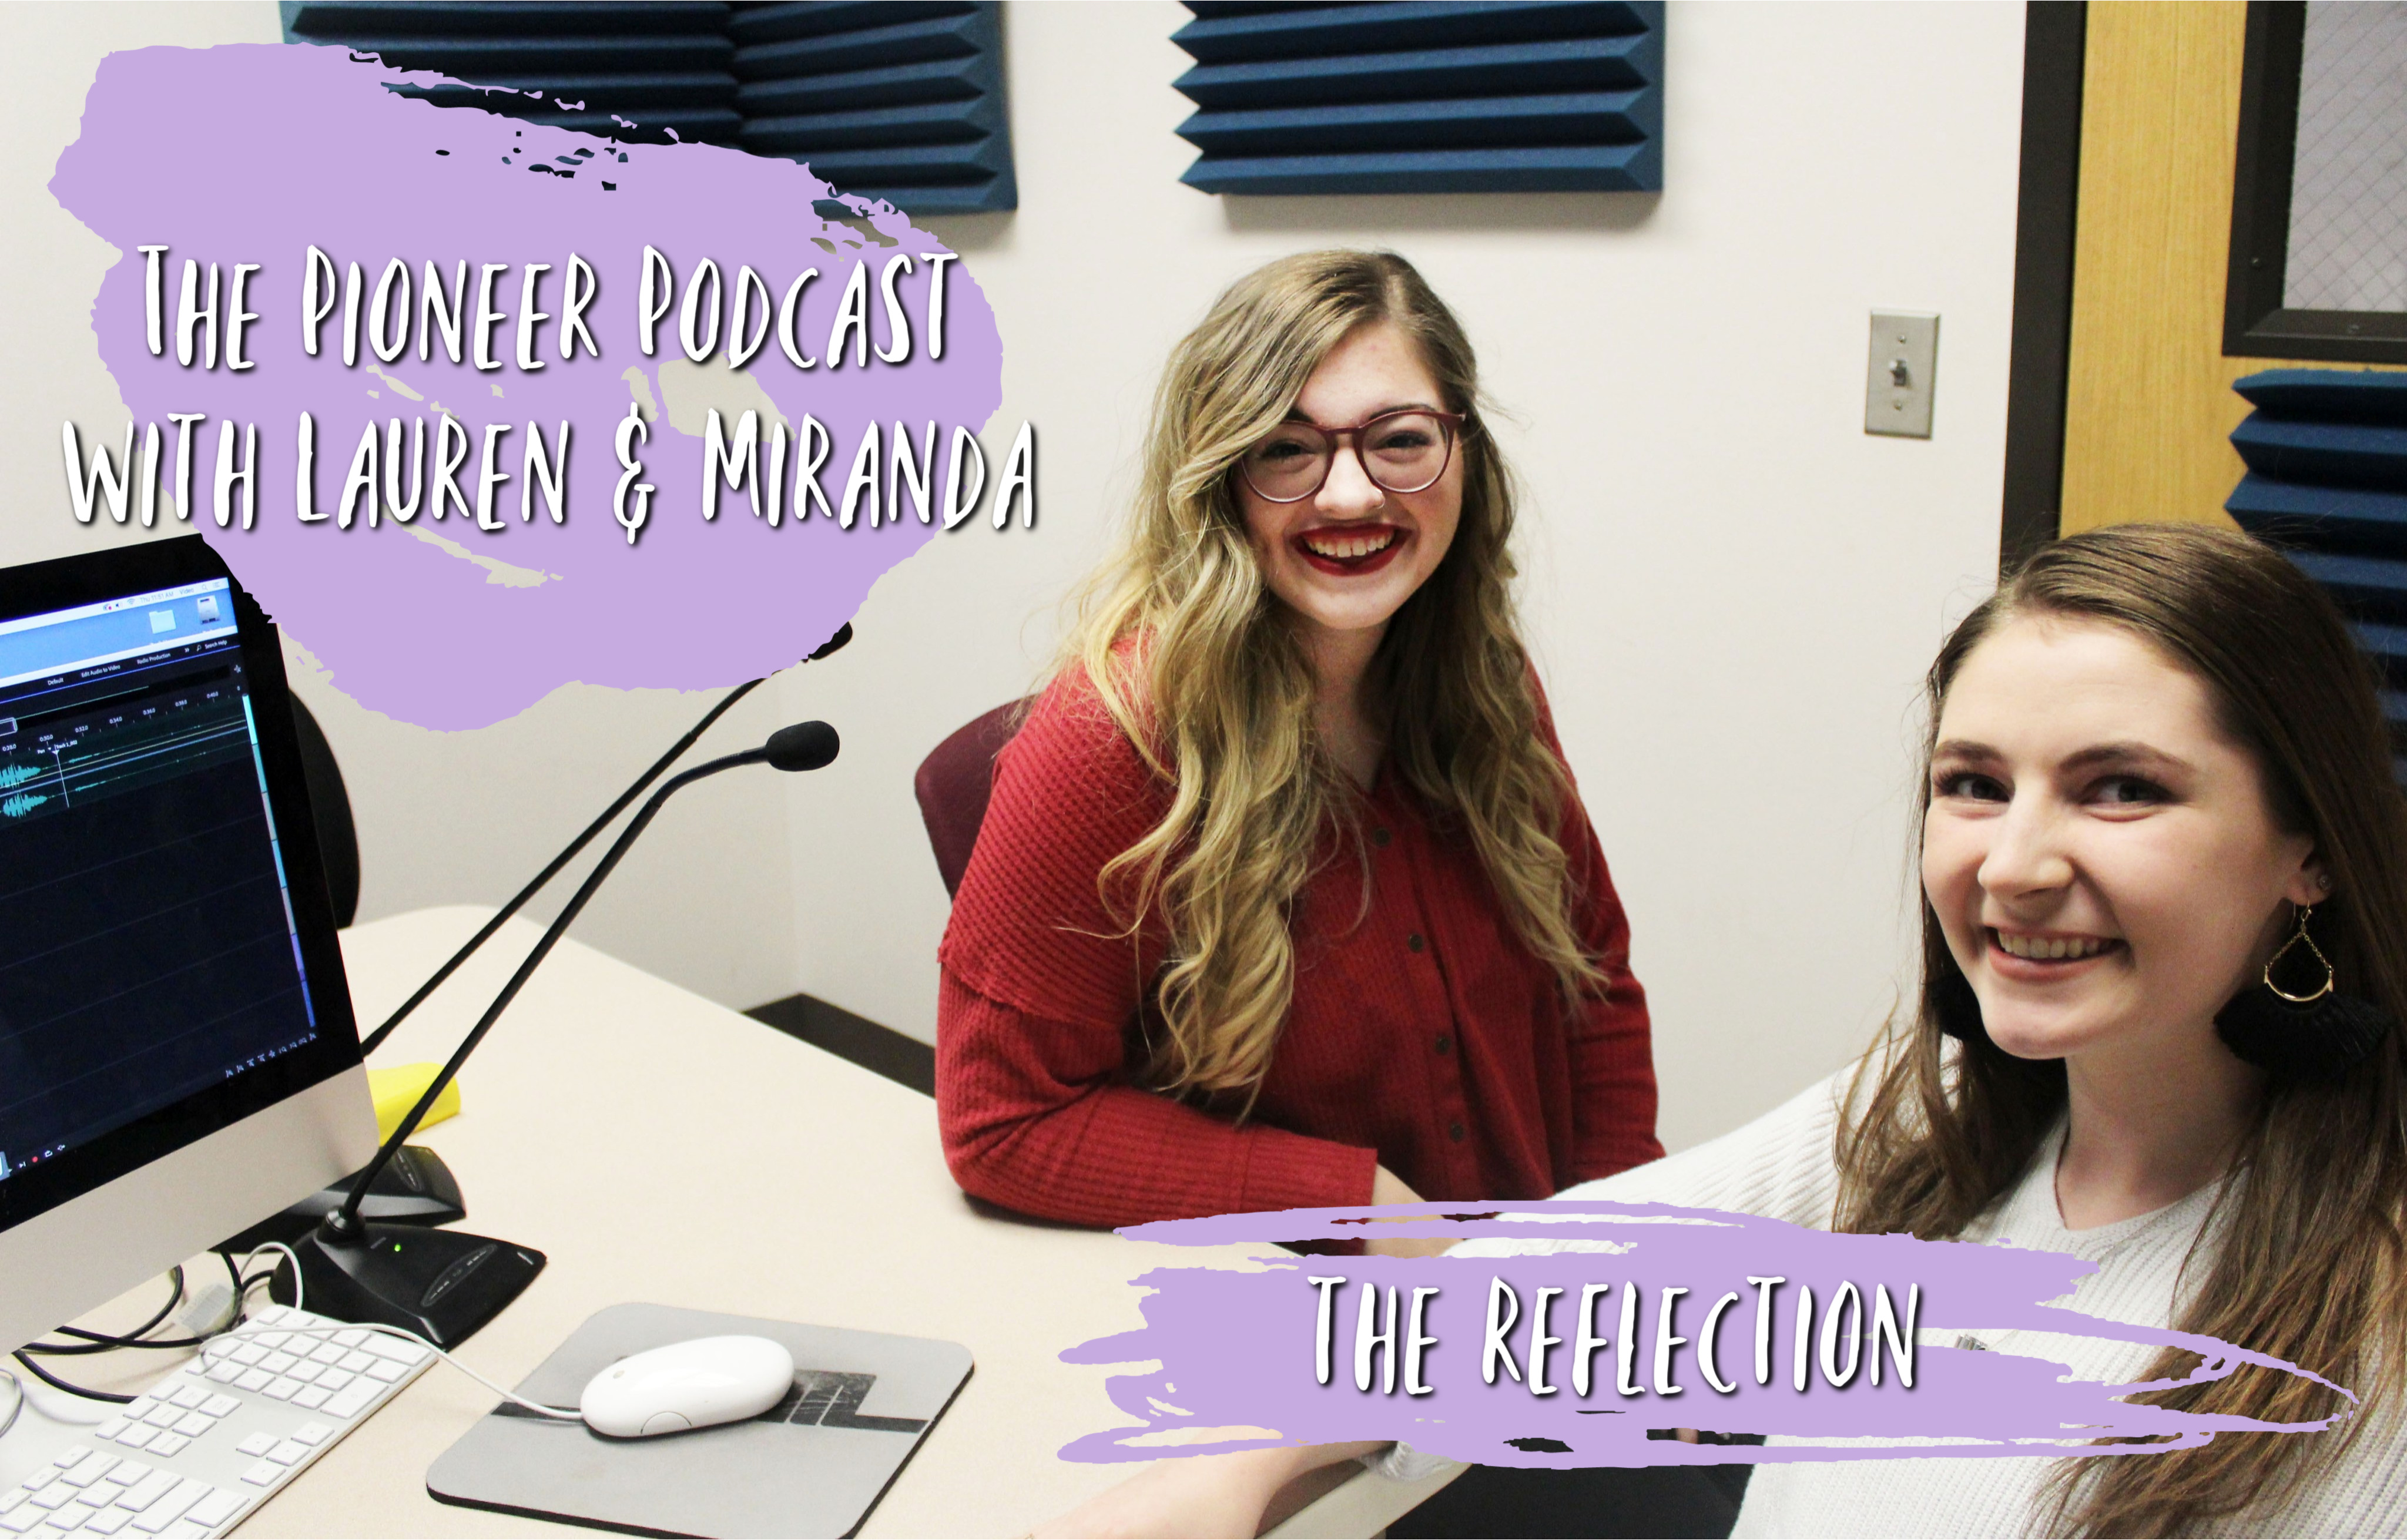 The Pioneer Podcast with Lauren and Miranda: The Reflection